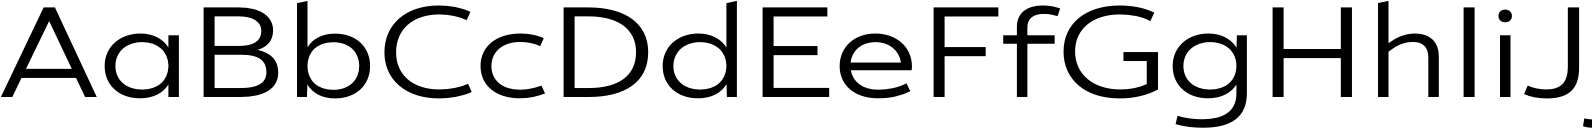 Ultine Ext Regular Font